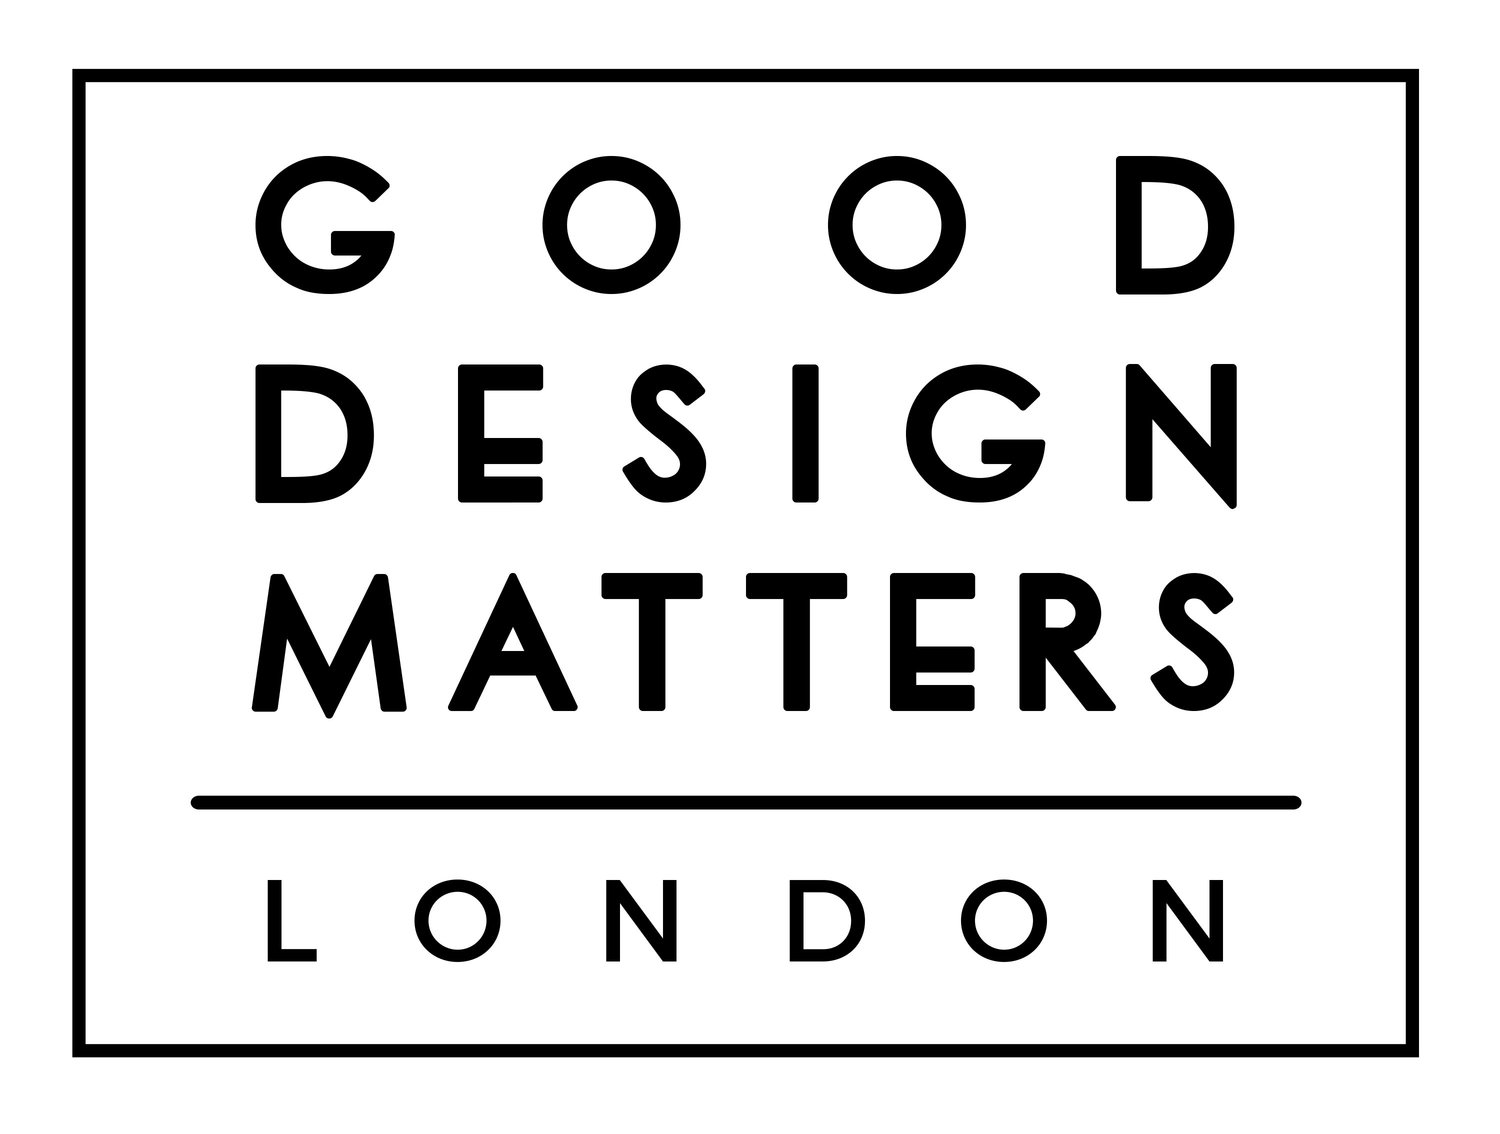 Good Design Matters London